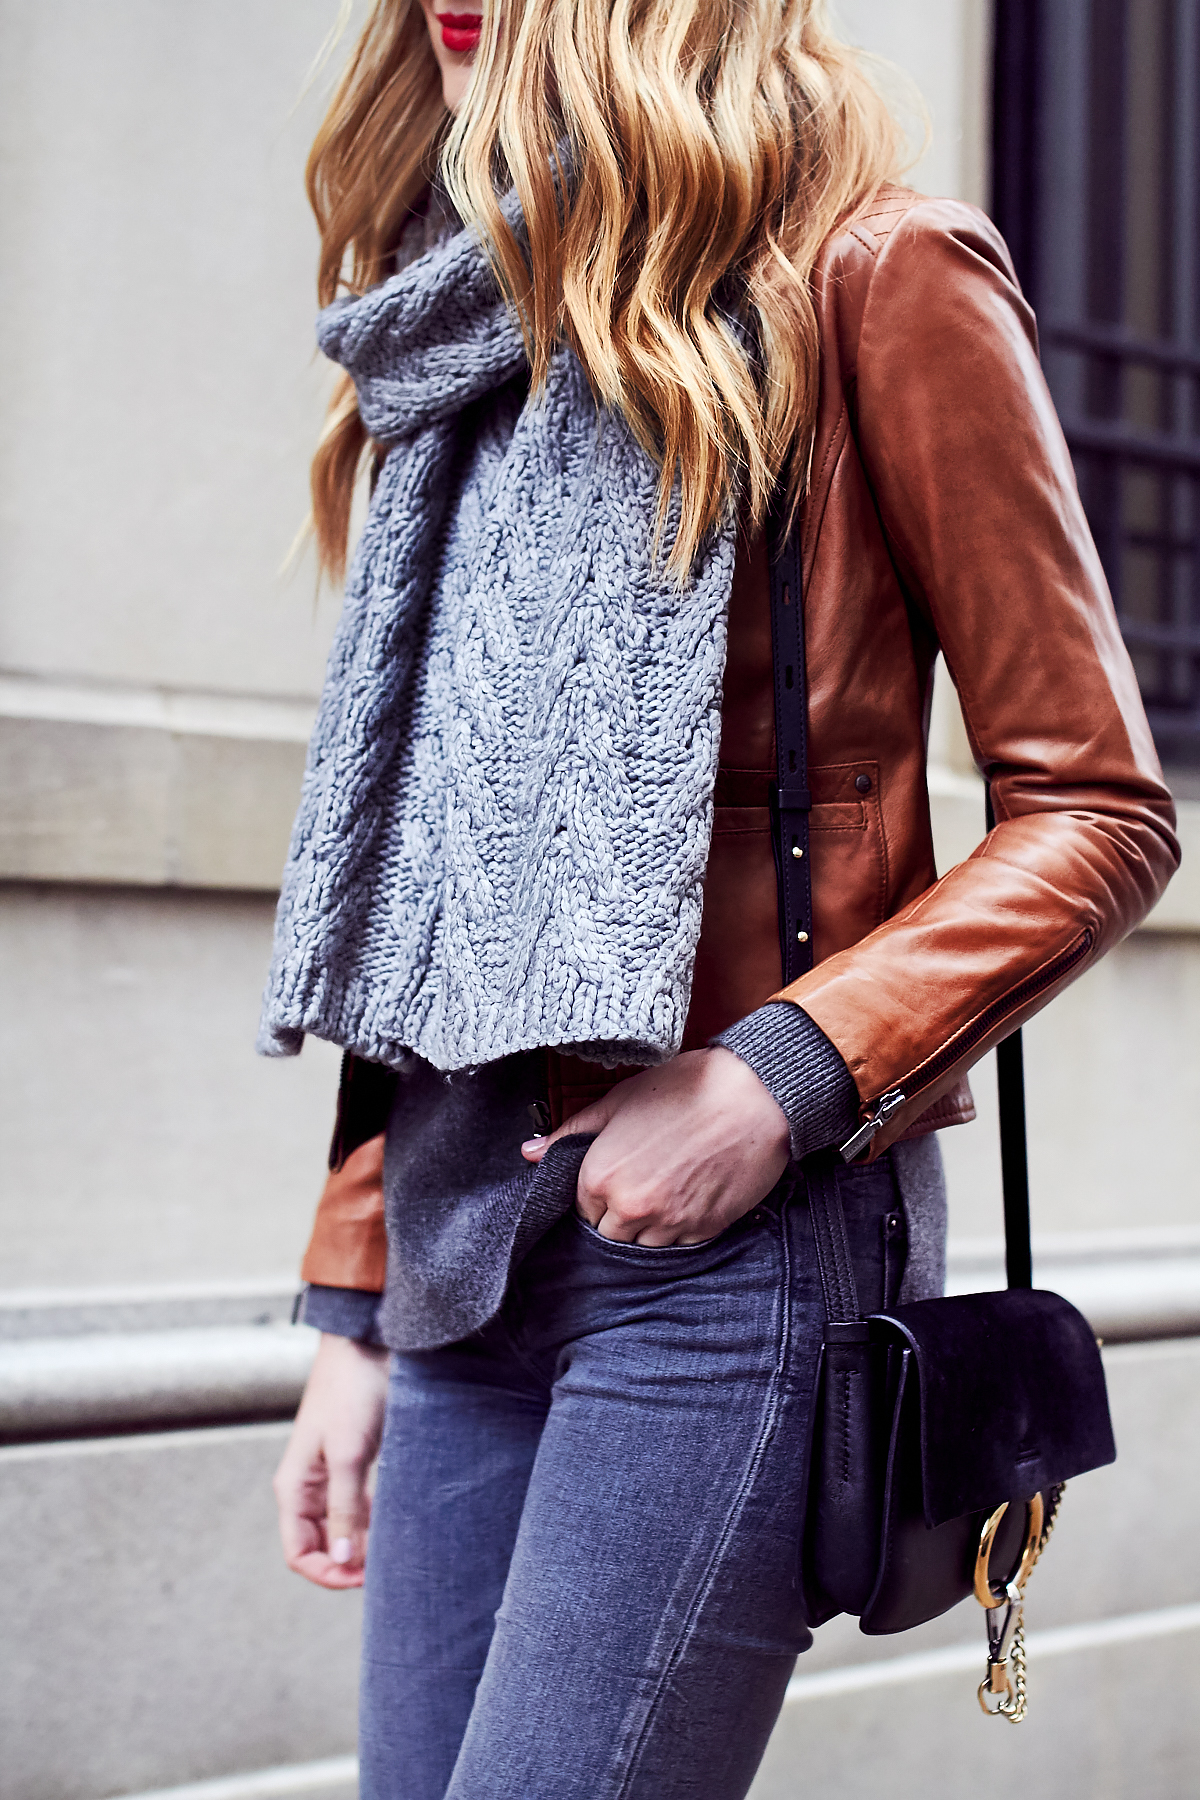 Fall Outfit, Winter Outfit, Grey Knit Scarf, Tan Faux Leather Jacket, Grey Skinny Jeans, Chloe Faye Handbag